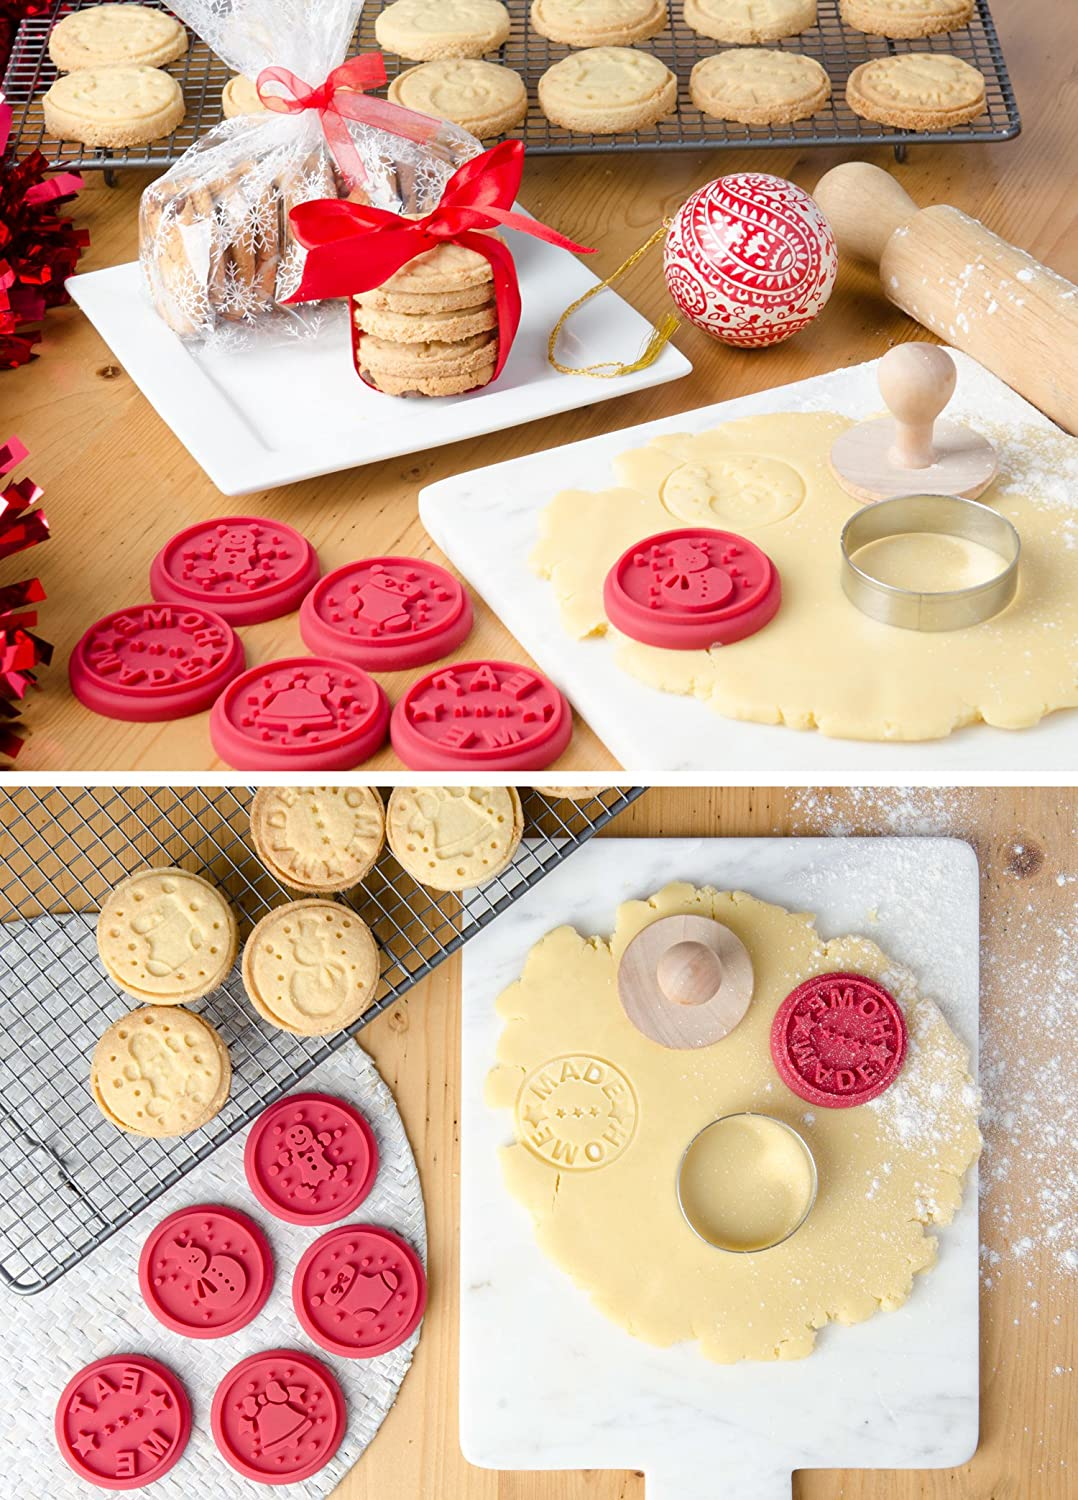 Hygienic One Piece Design High Heat Resistant to 480/°F Stamps include Homemade StarPack Christmas Cookie Stamps Set of 6 1 Round Cookie Cutter 1 Wooden Press Eat Me and Snowman